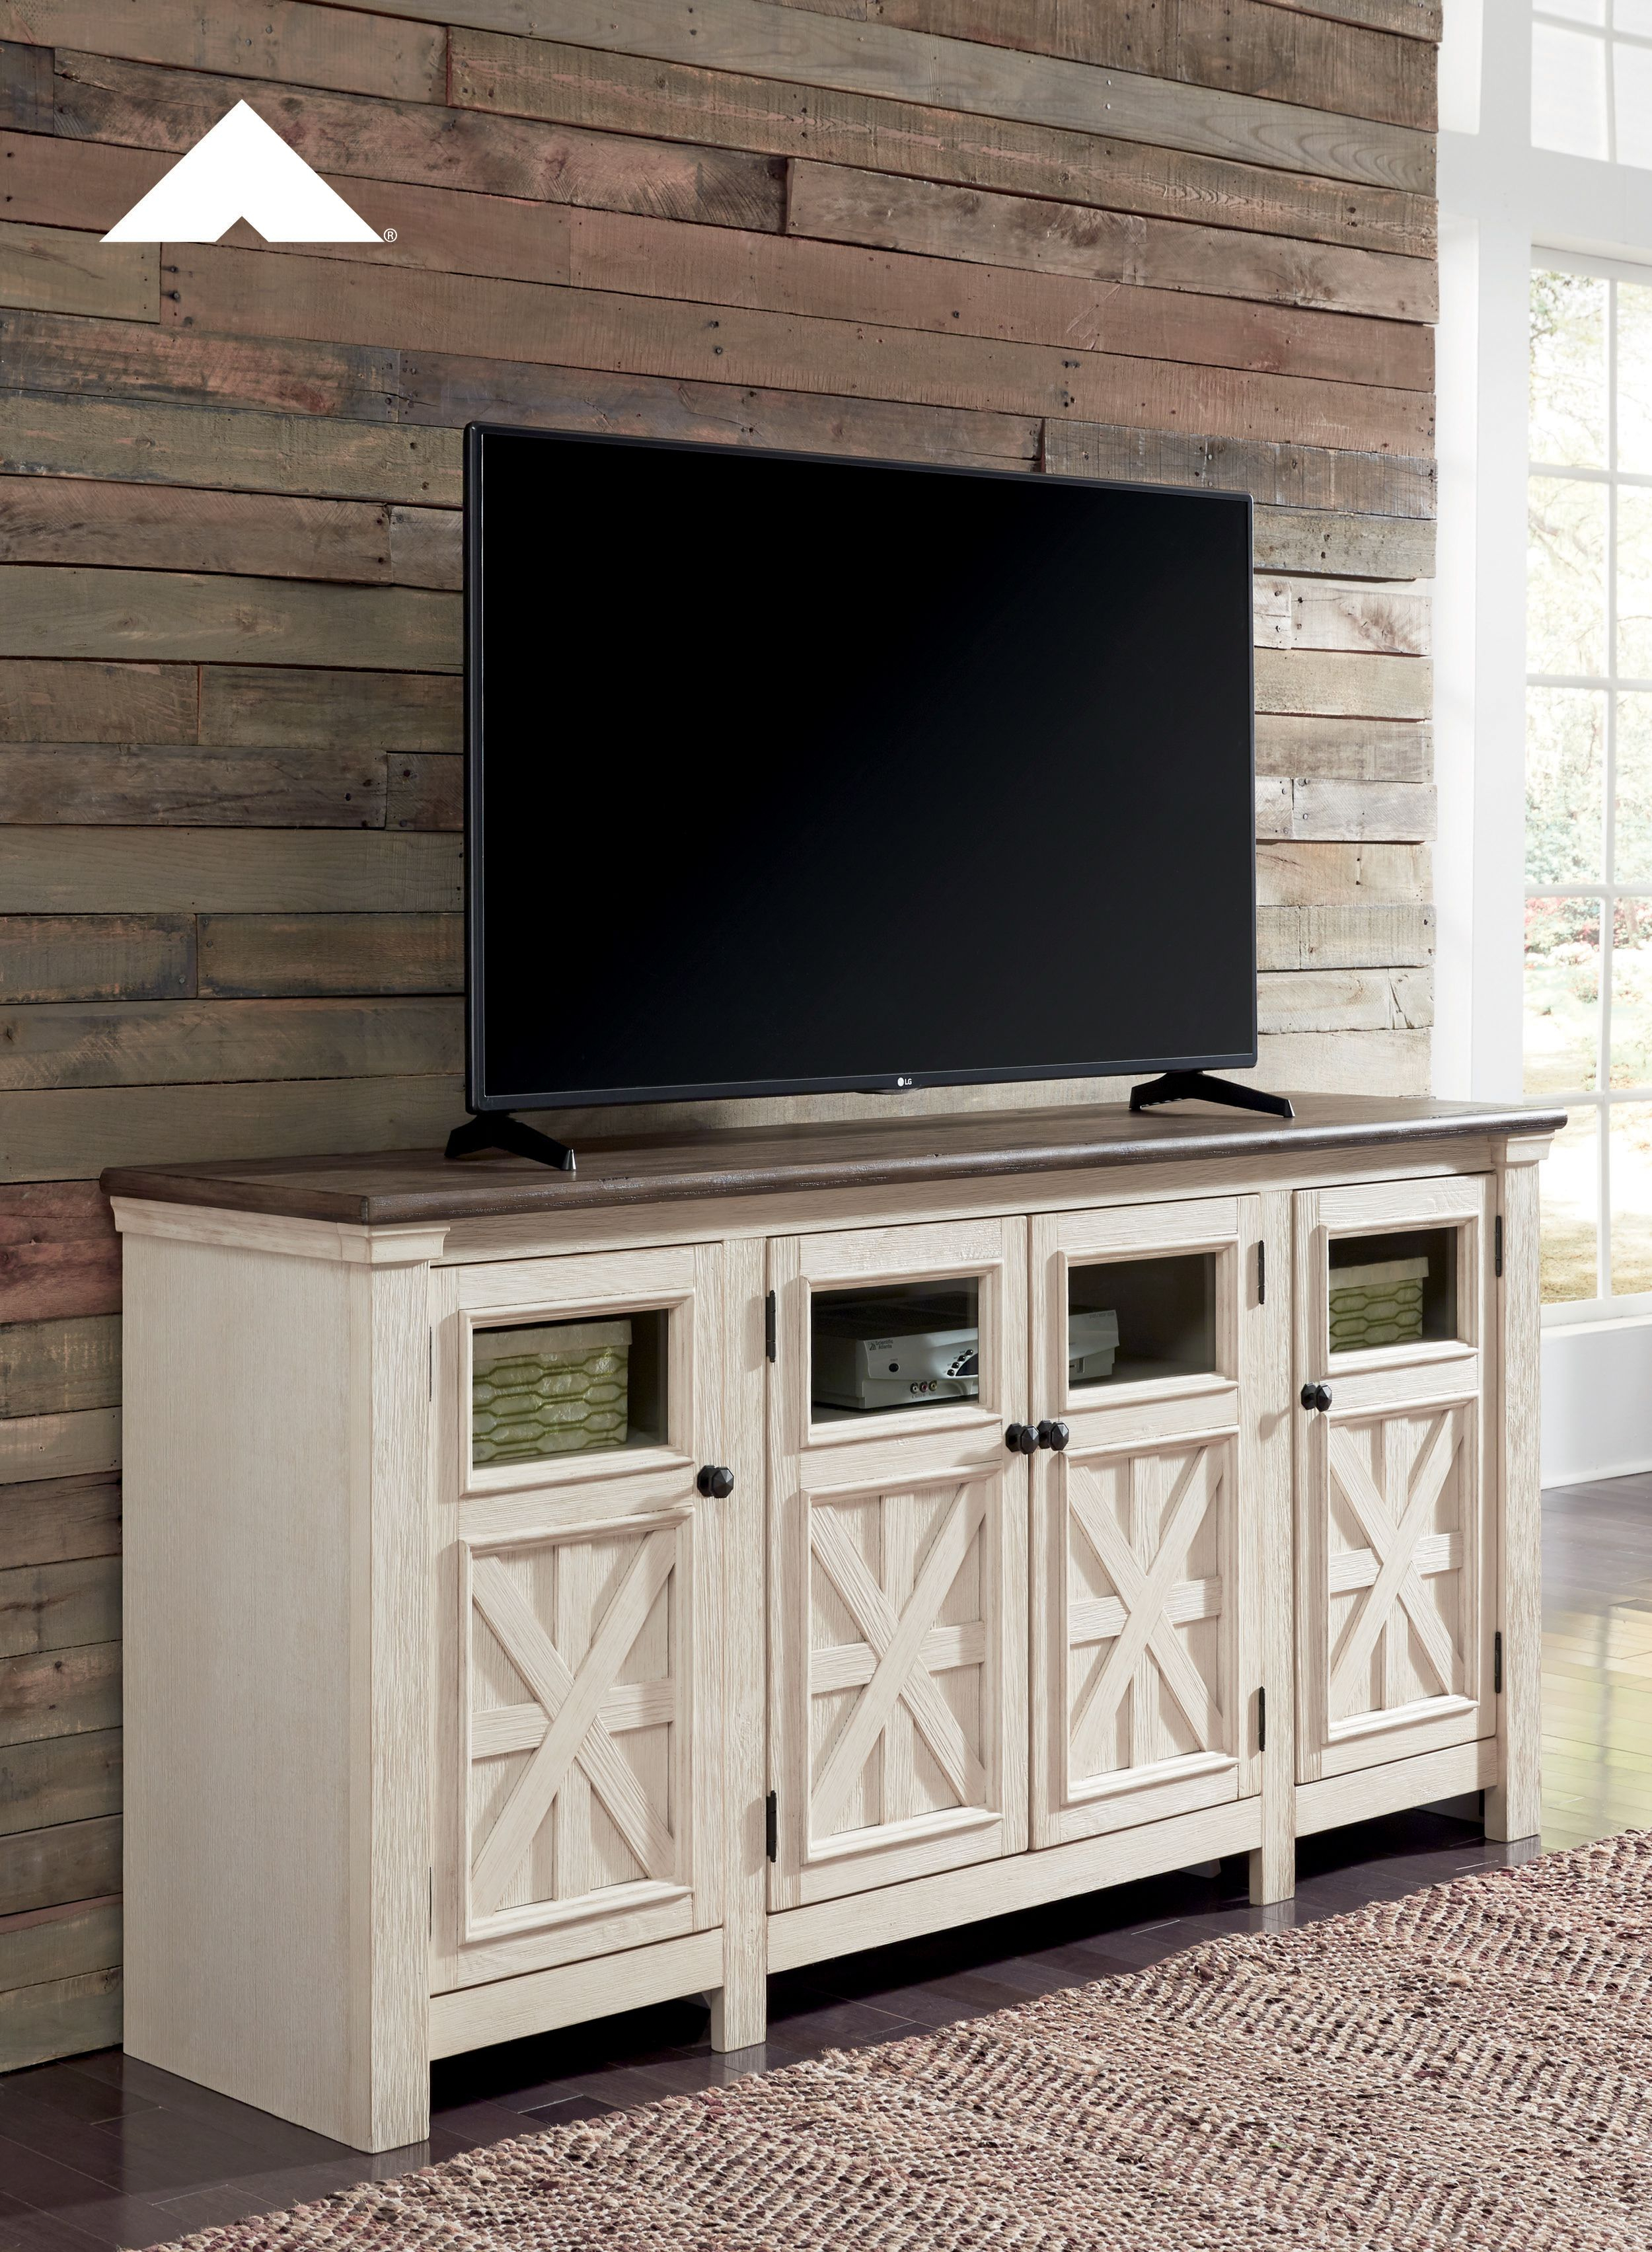 """Bolanburg Two Tone Antique White And Weathered Oak Extra Intended For Parmelee Tv Stands For Tvs Up To 65"""" (View 13 of 30)"""